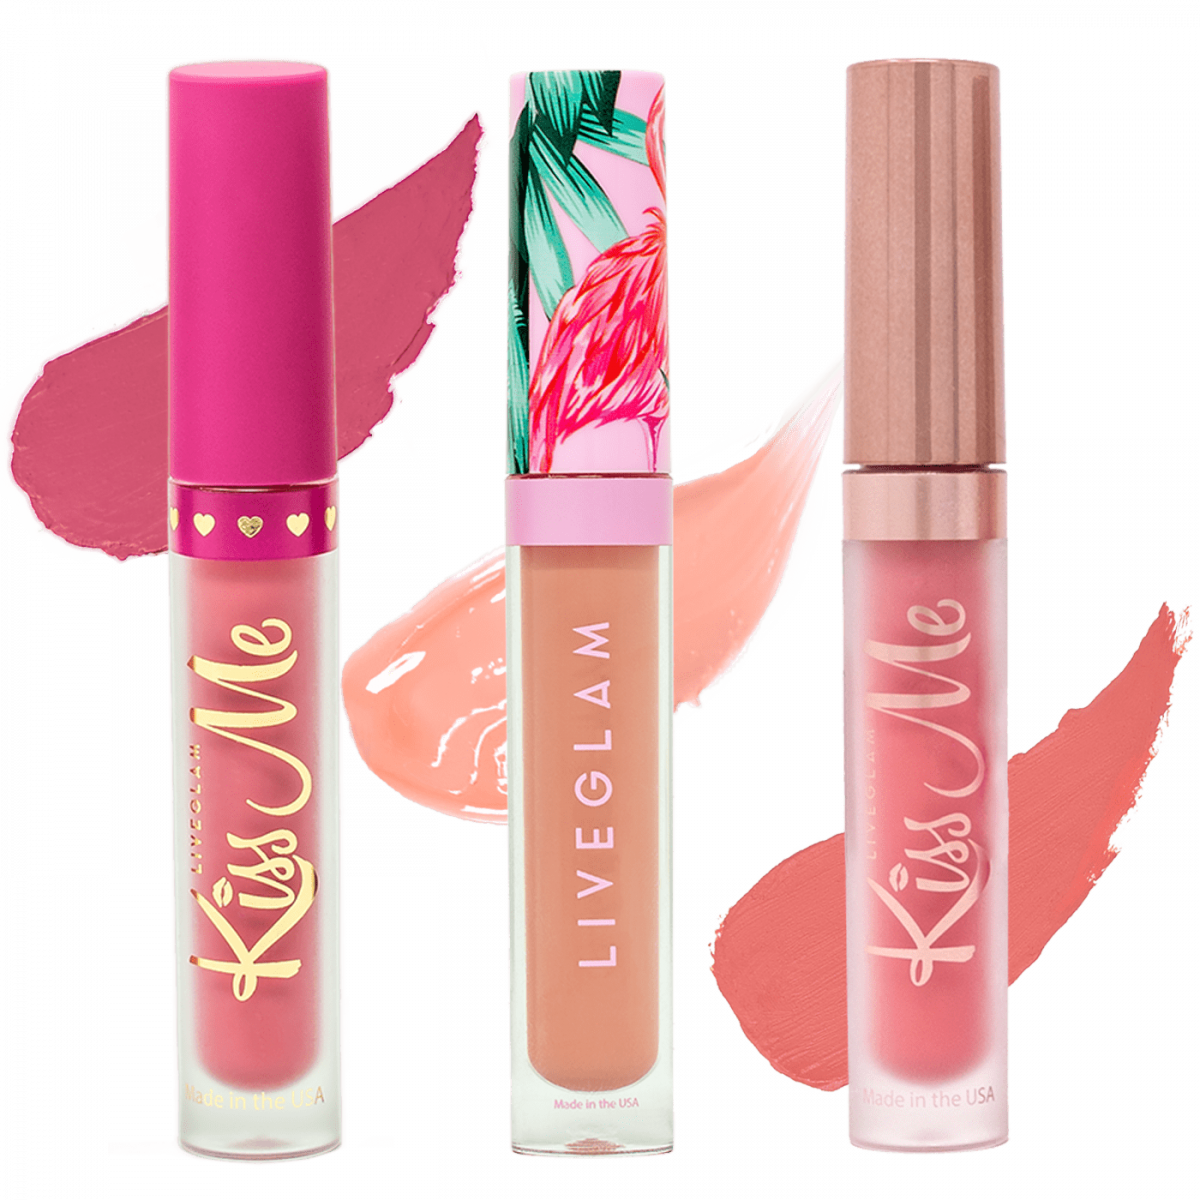 LiveGlam Sprung Bundle lipstick collection